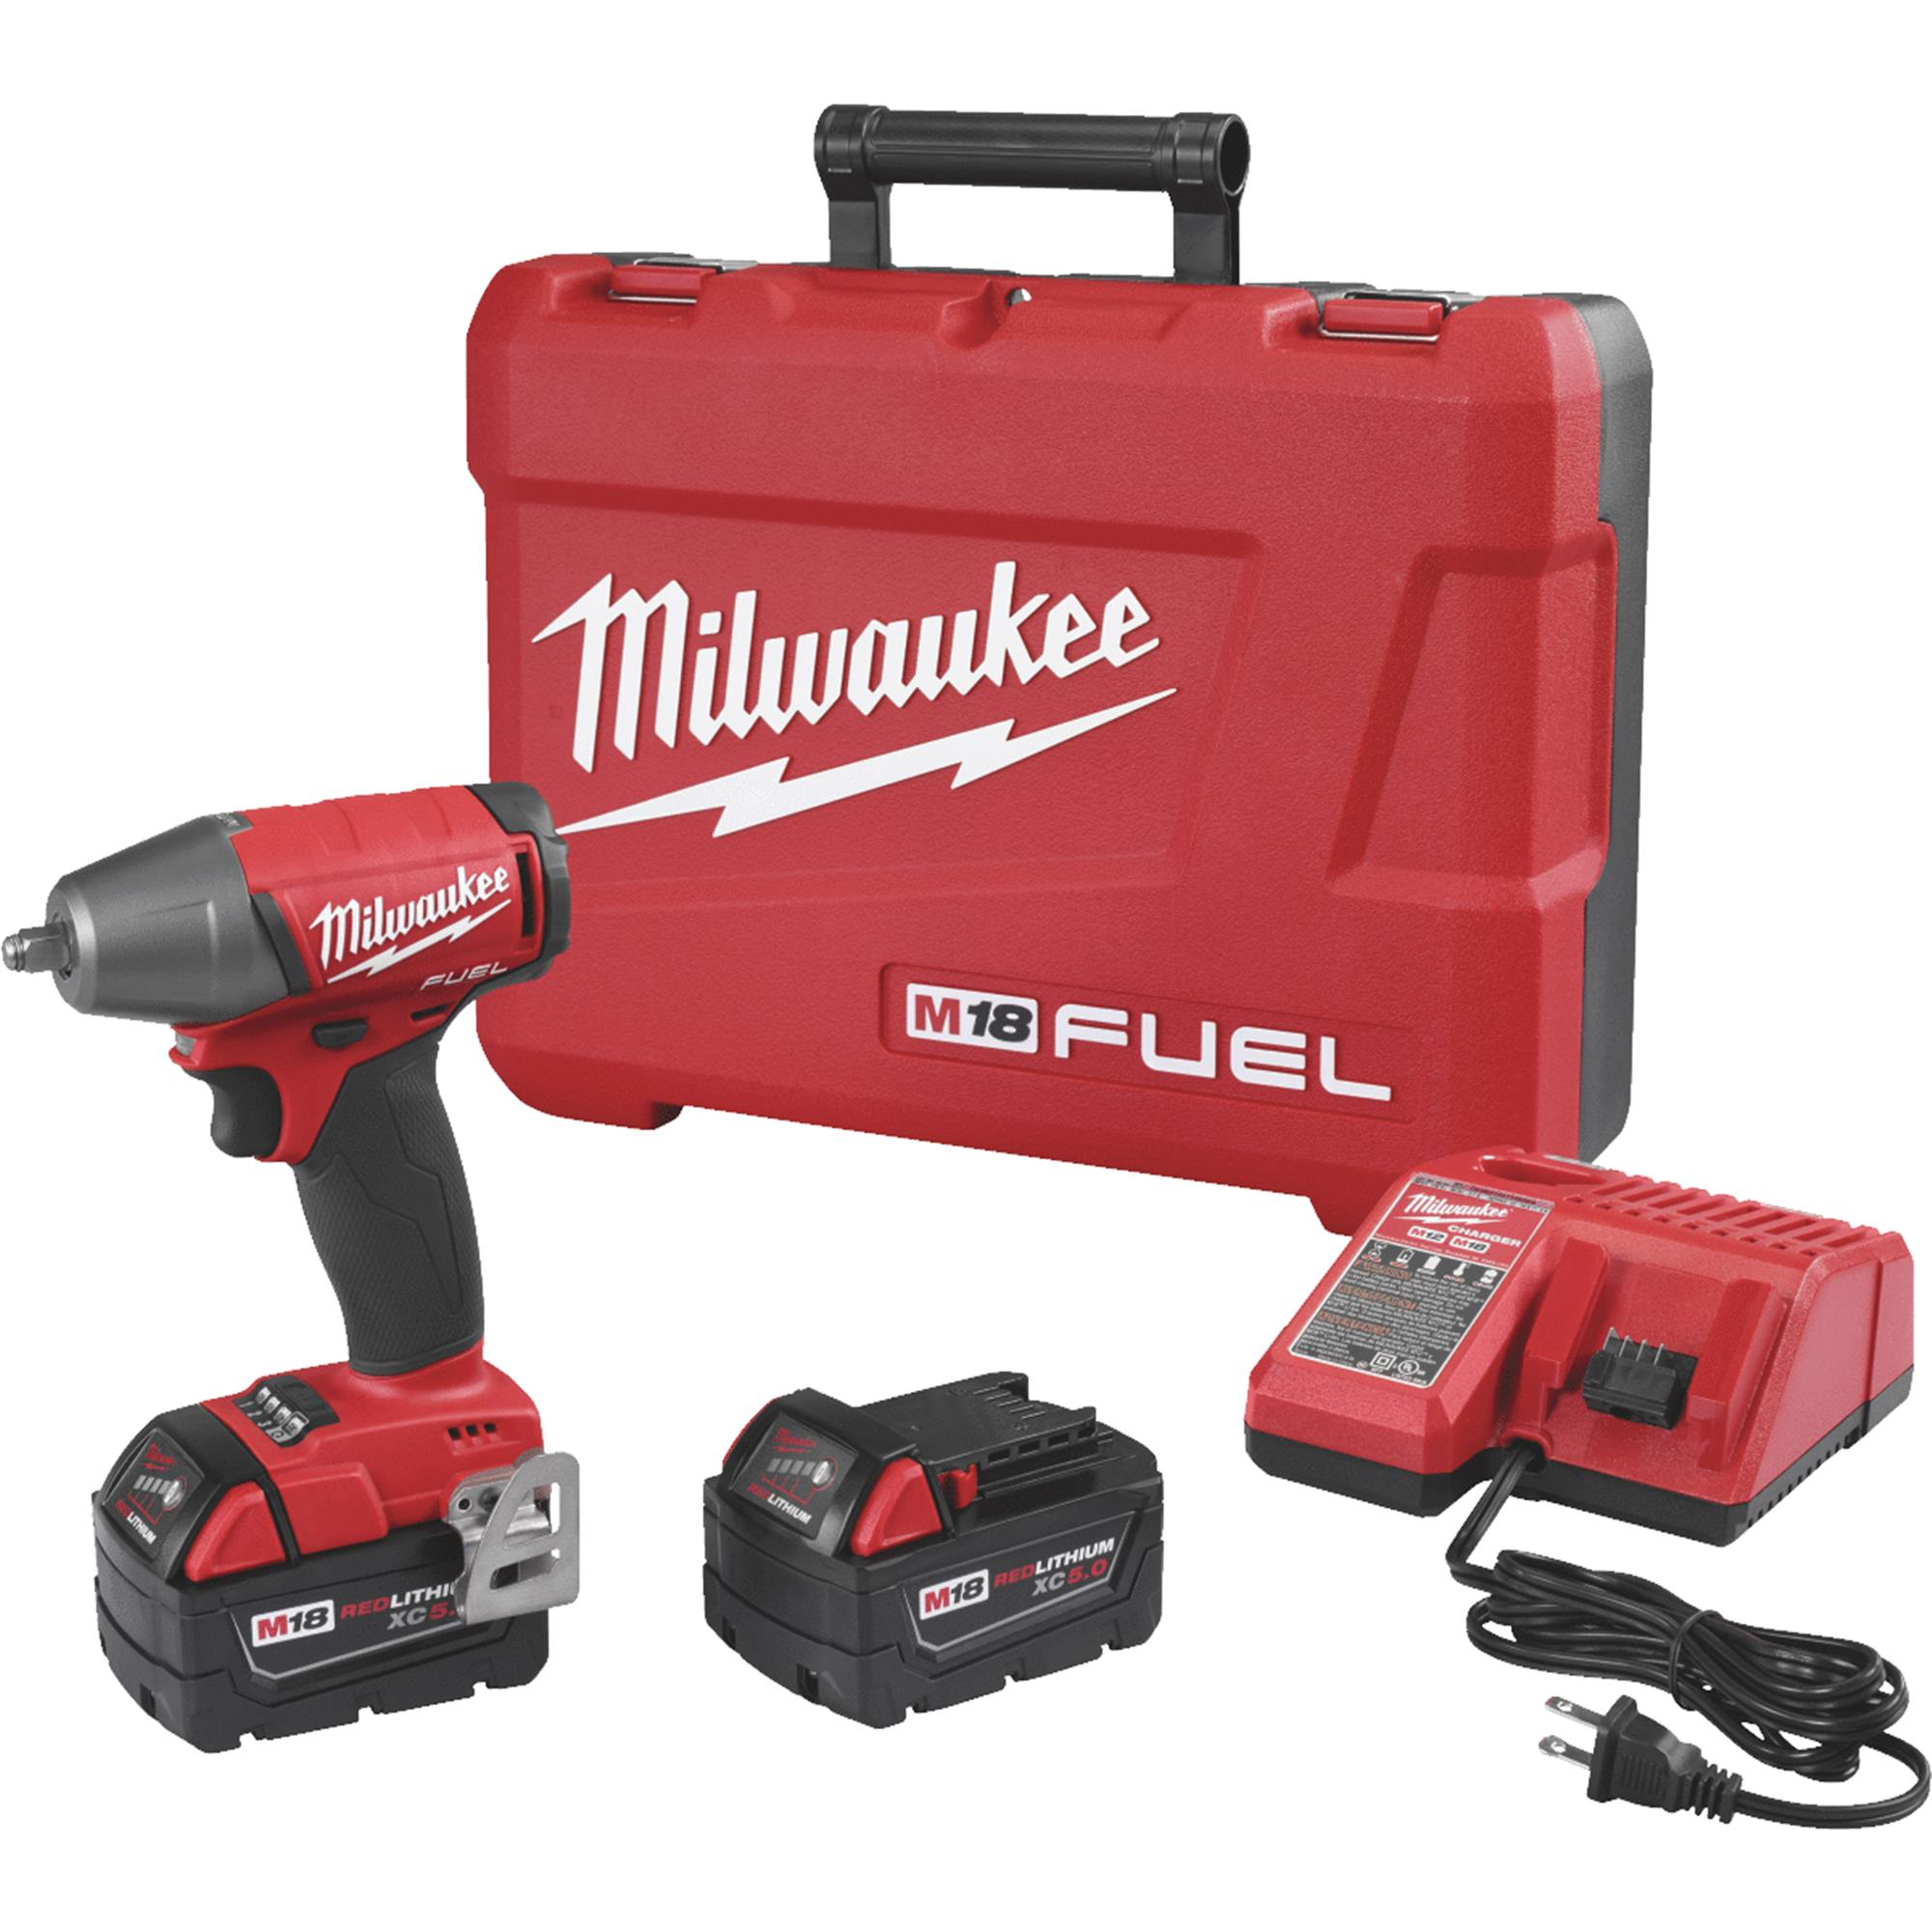 Milwaukee M18 FUEL Lithium-Ion Compact Brushless Impact Wrench Kit